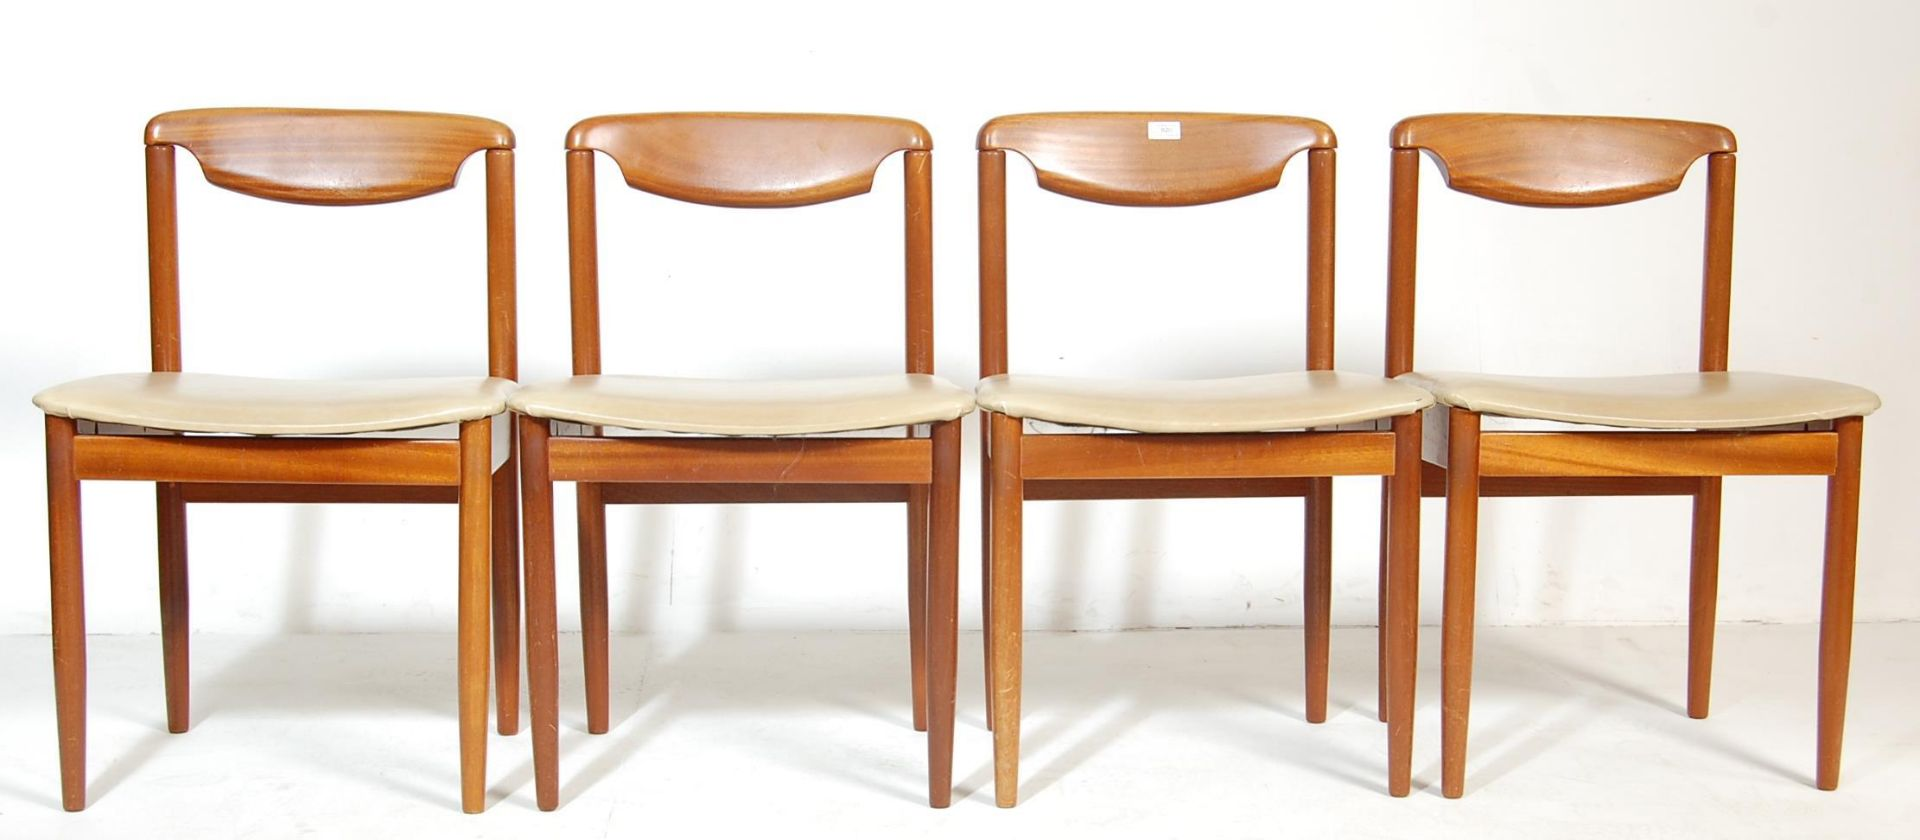 FOUR RETRO TEAK WOOD DINING CHAIRS WITH LEATHER SEATS